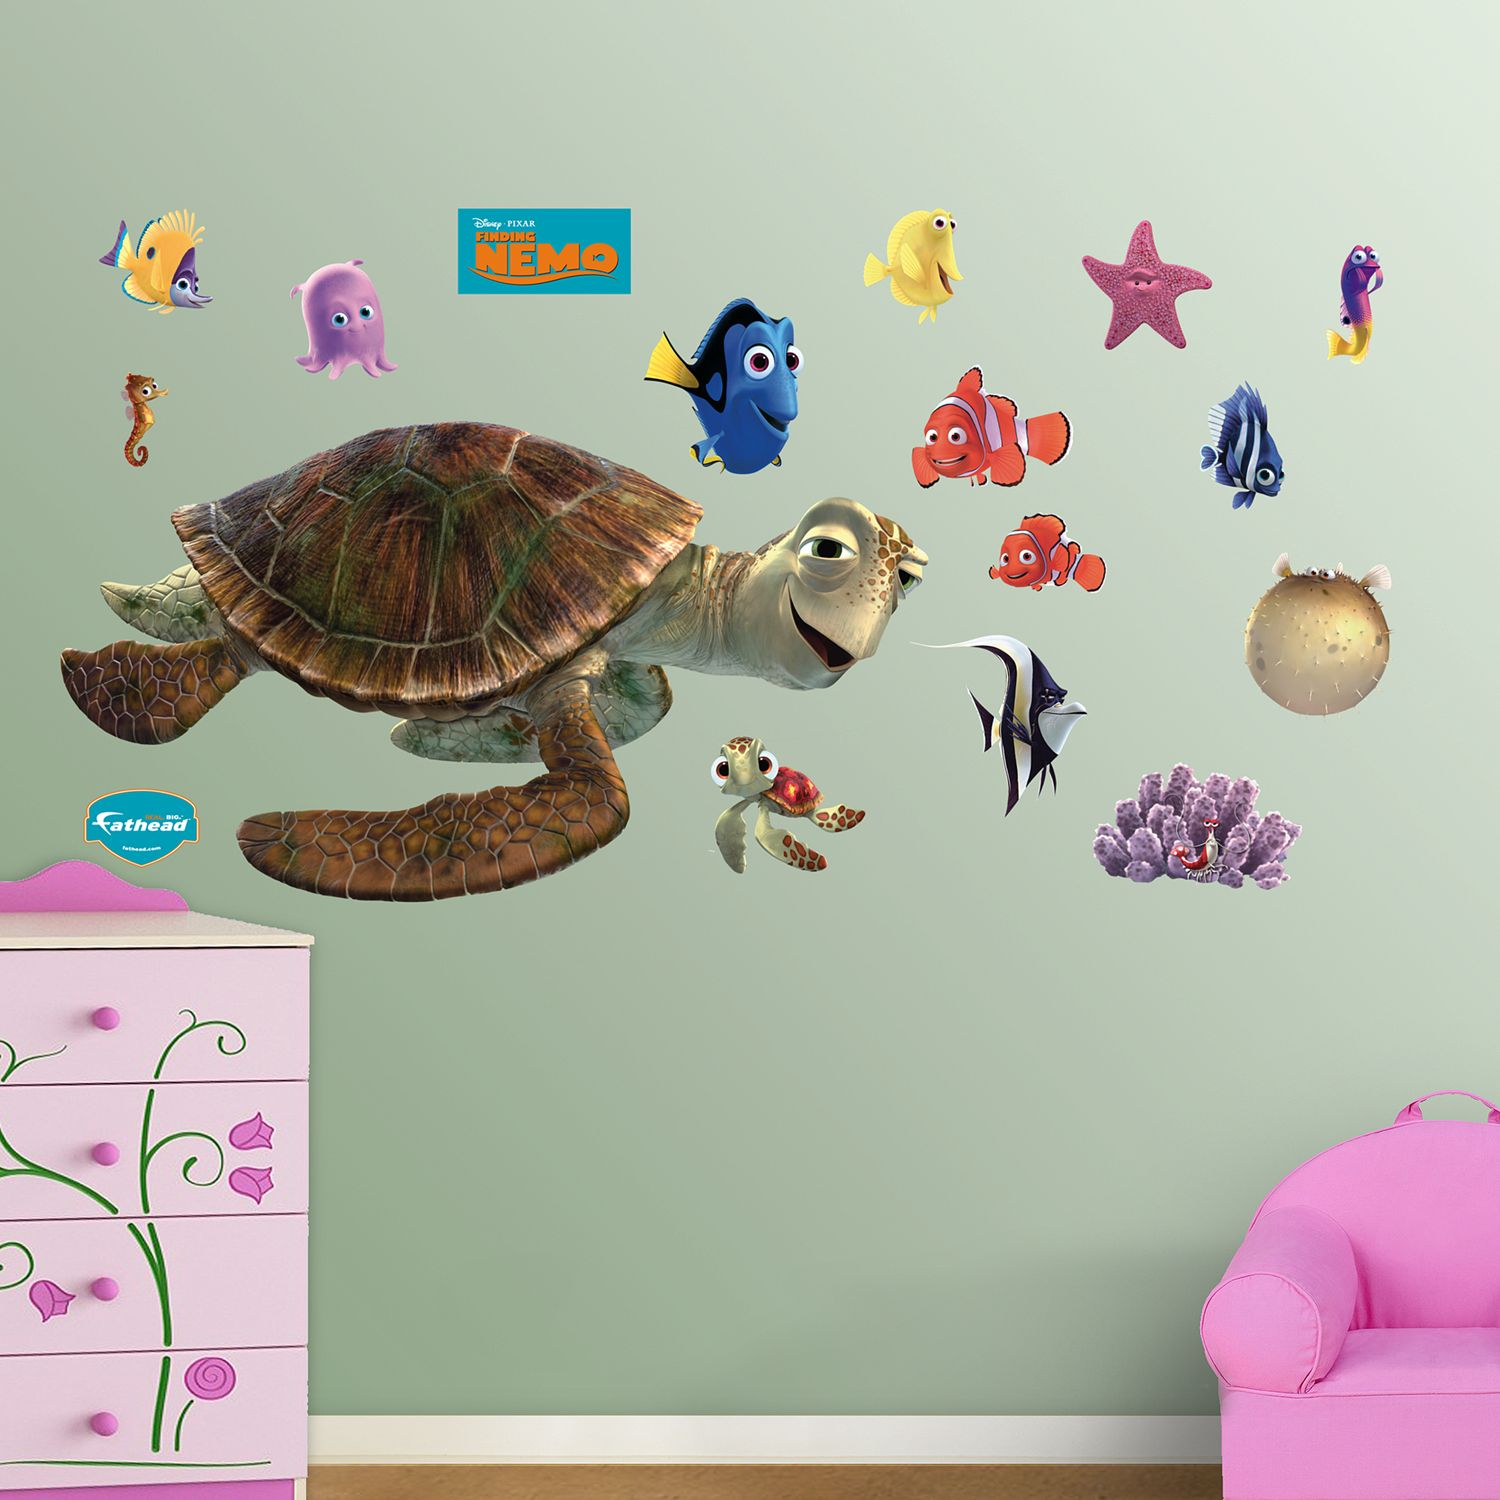 Attirant Disney / Pixar Finding Nemo Wall Decals By Fathead